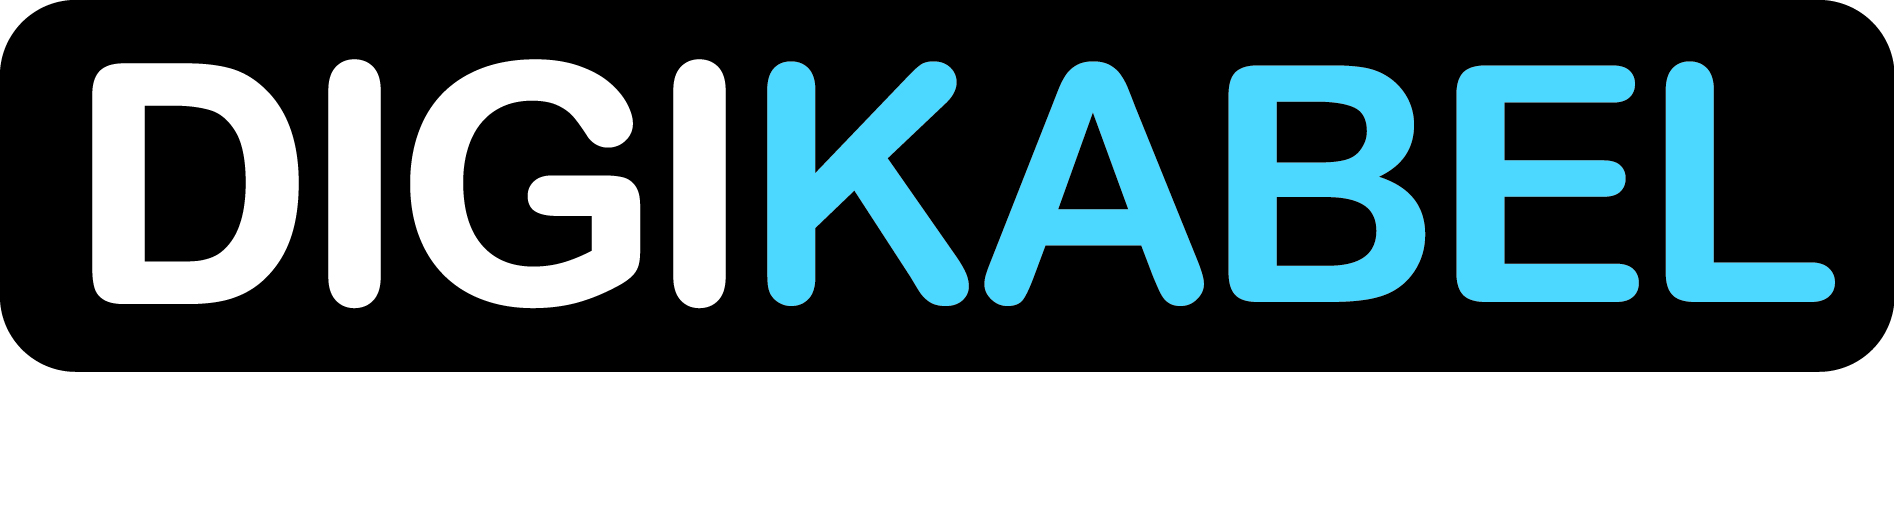 Digikabel logo